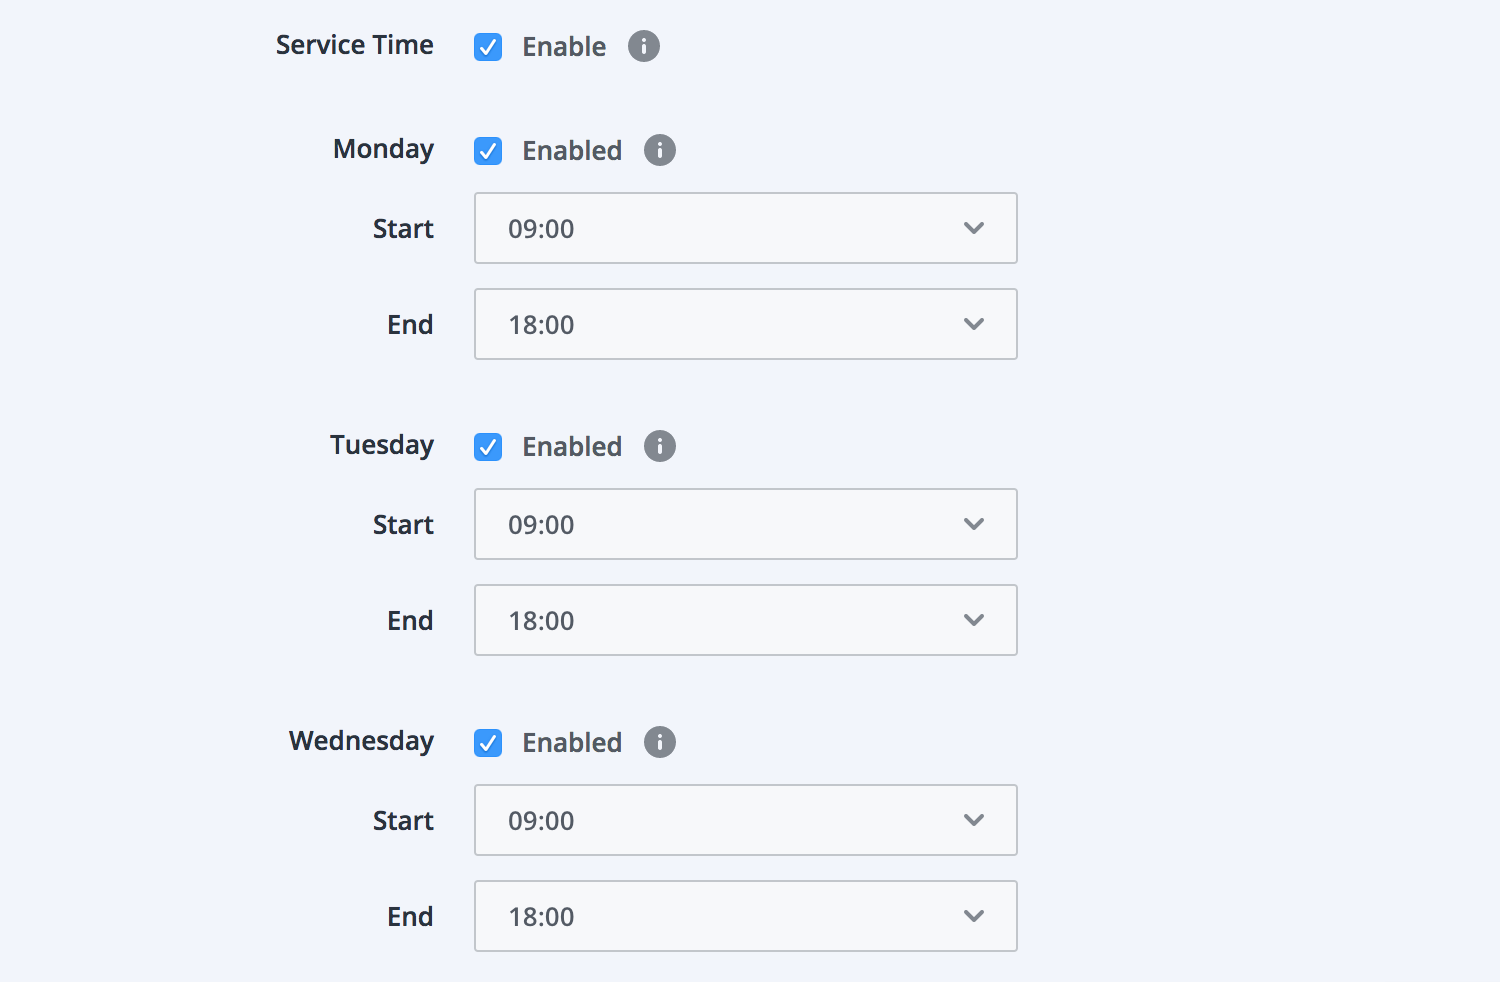 Screenshot of daily service time.